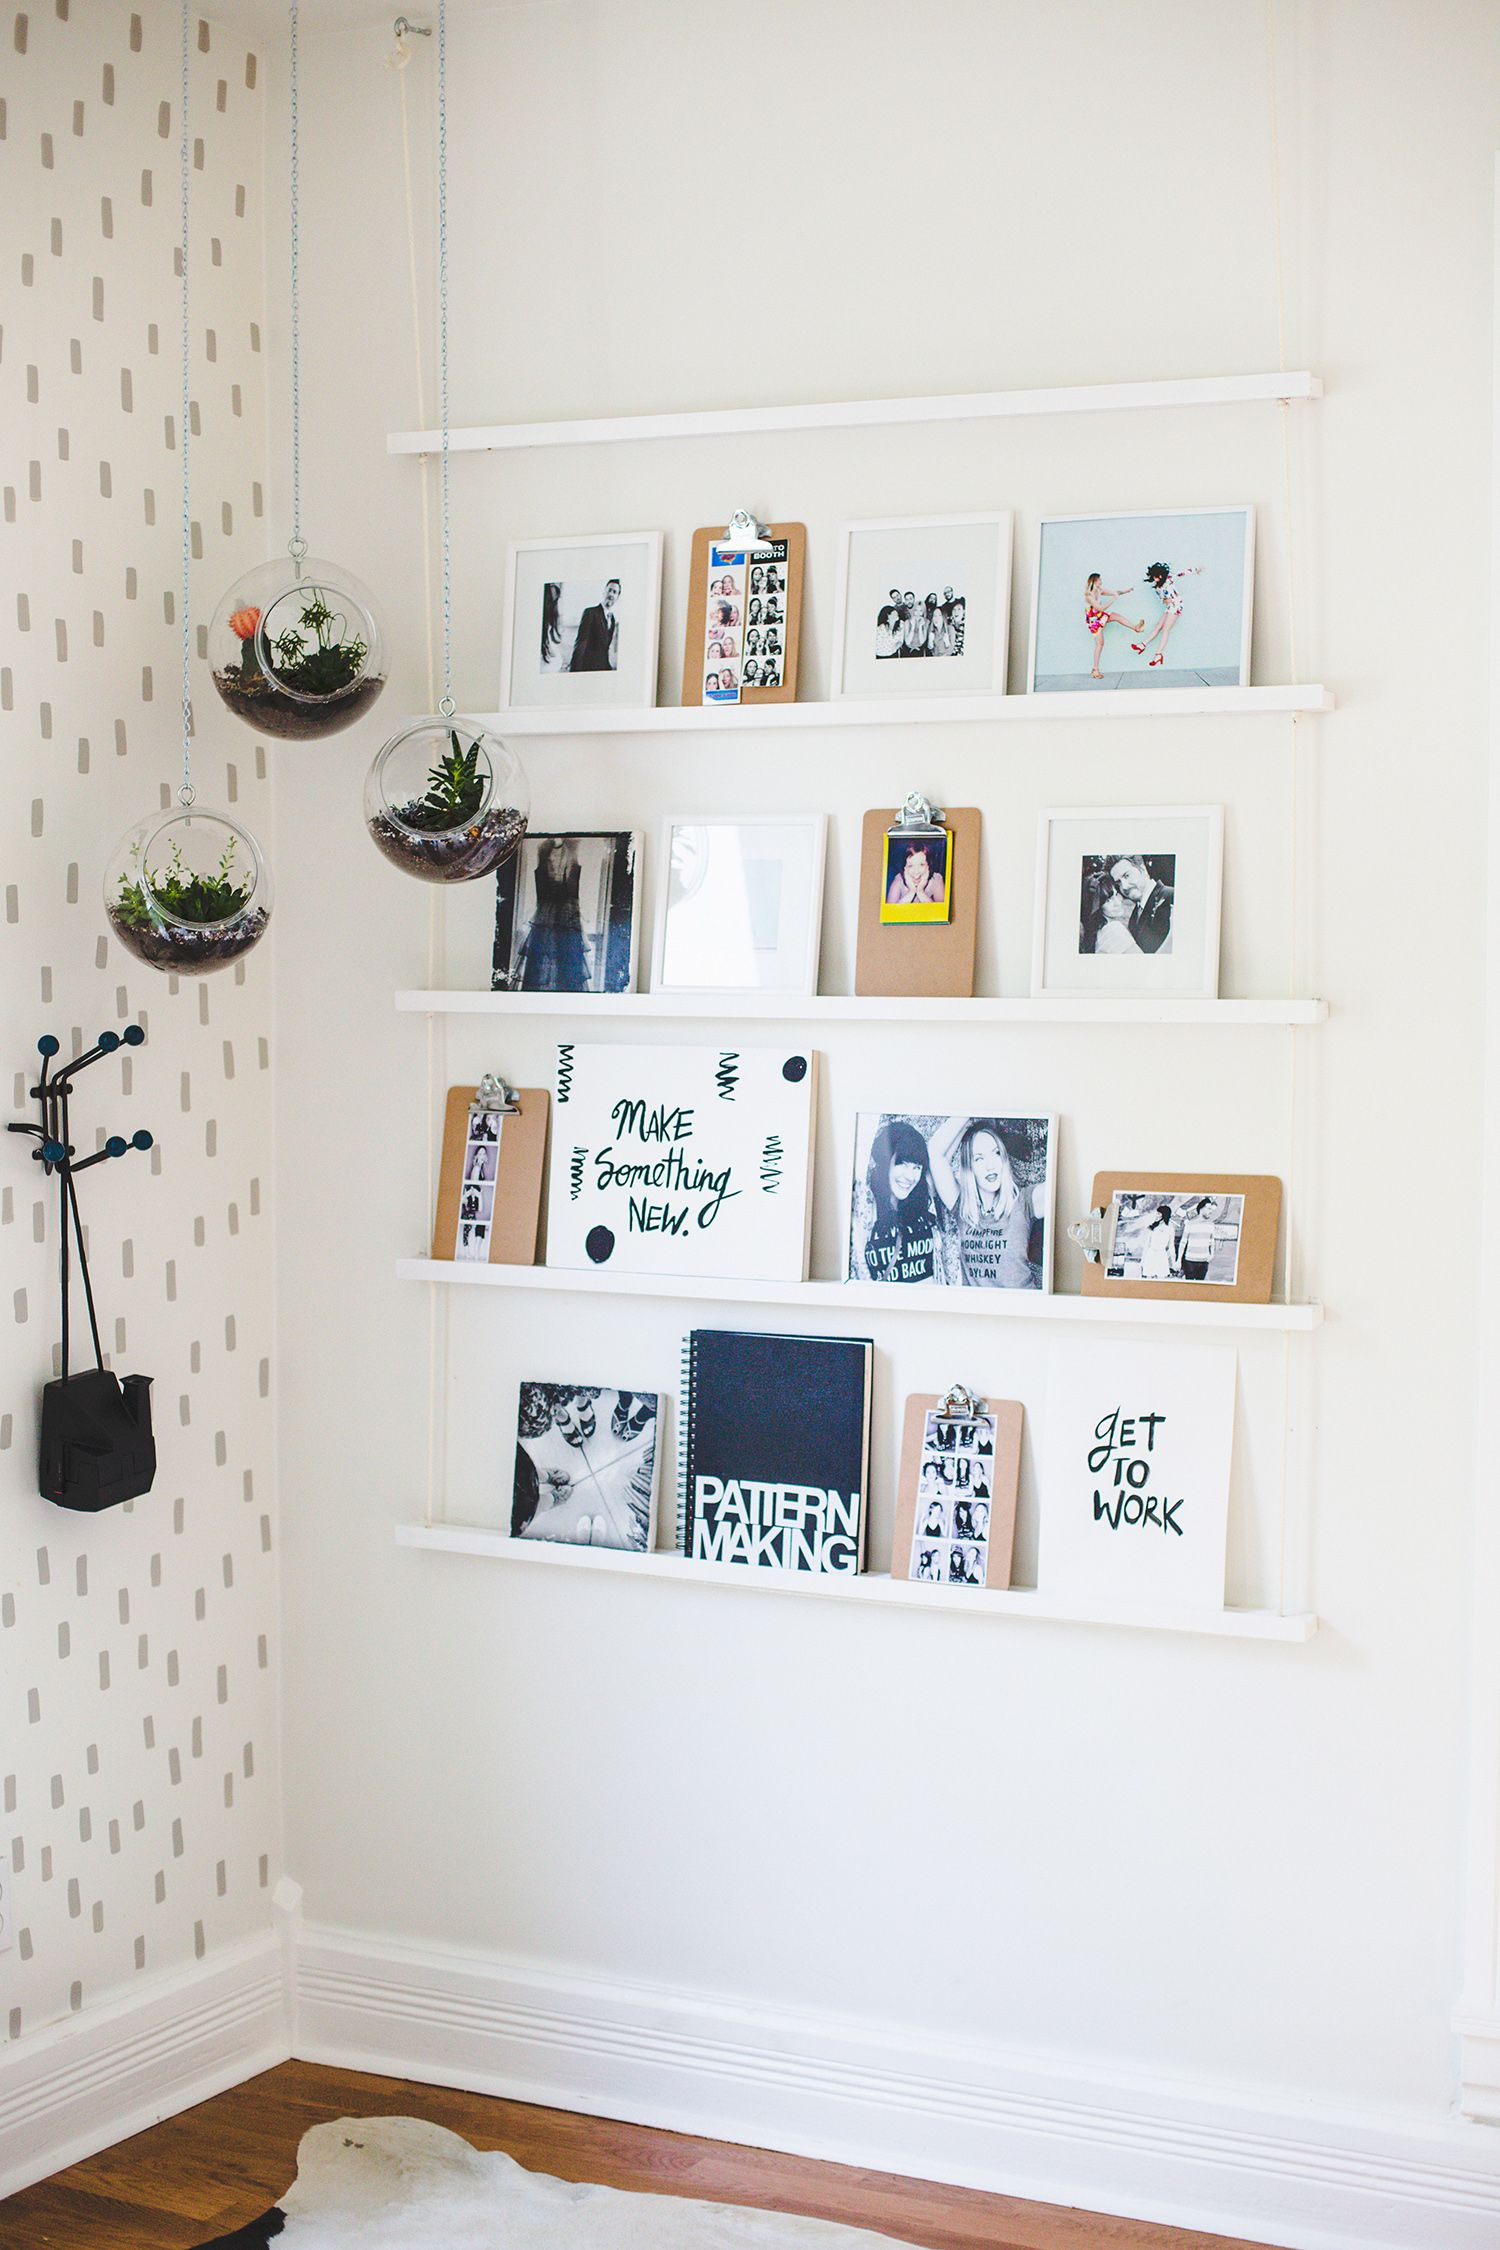 Diy Hanging Rope Shelf, Clip Boards Used To Display Photos